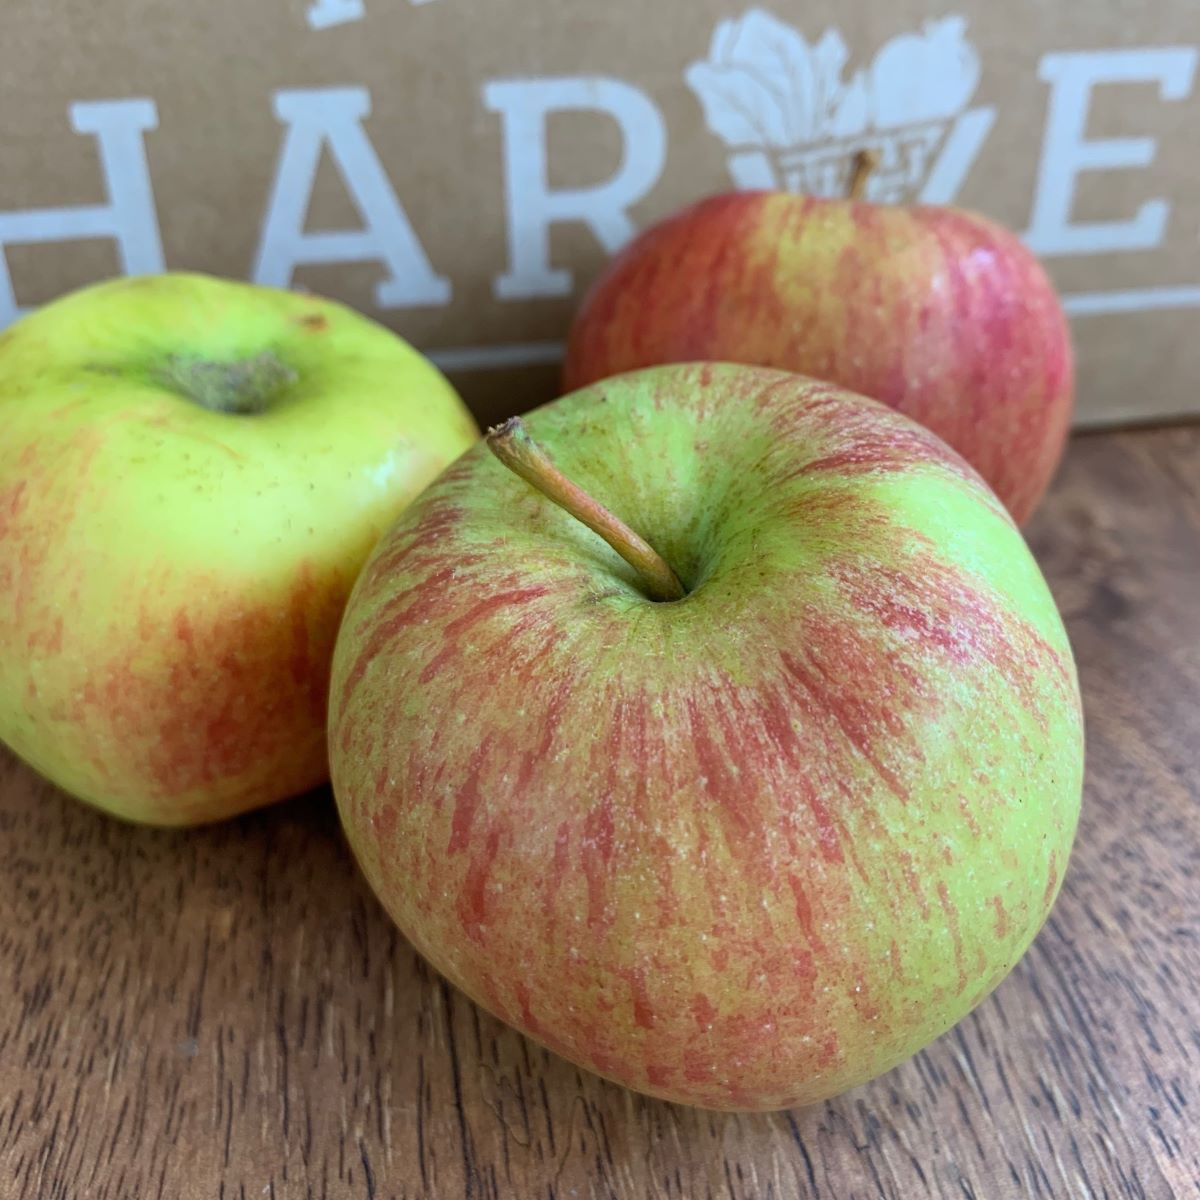 Chocolate-Granola Apple WedgesFirm, sweet Braeburn apples balance nicely in this decadent snack - Find the recipe at: My Recipes